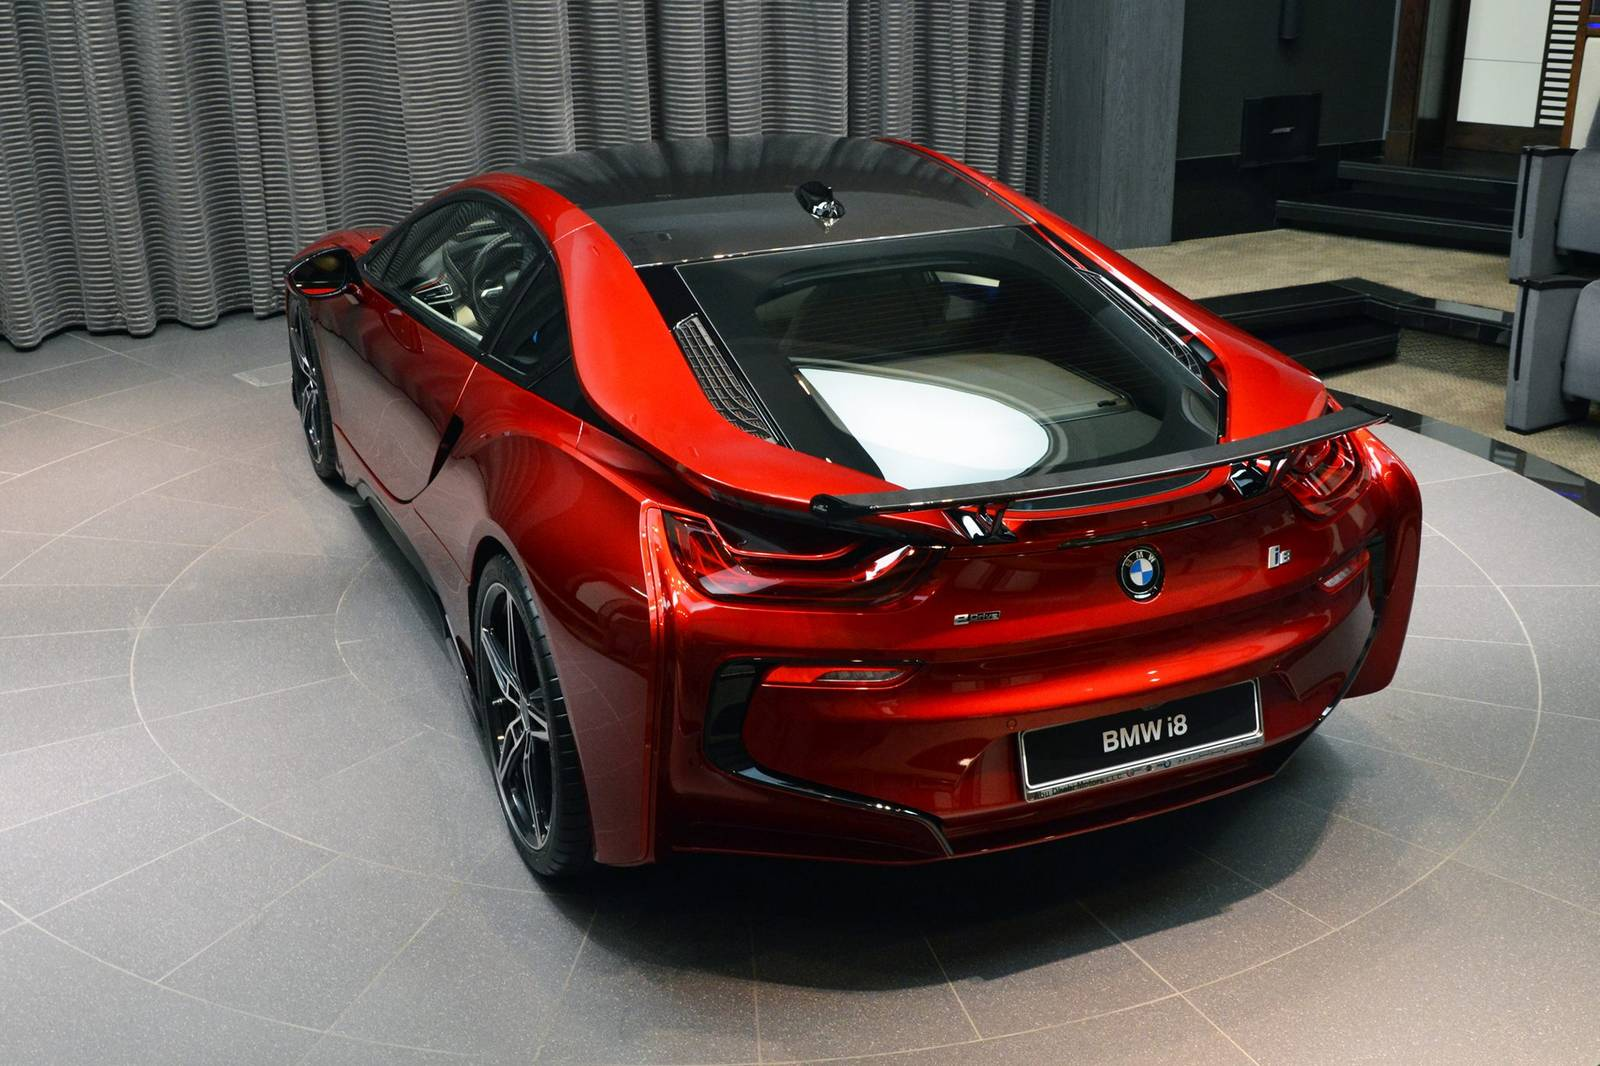 Lava Red BMW I8 1 Of 20 This